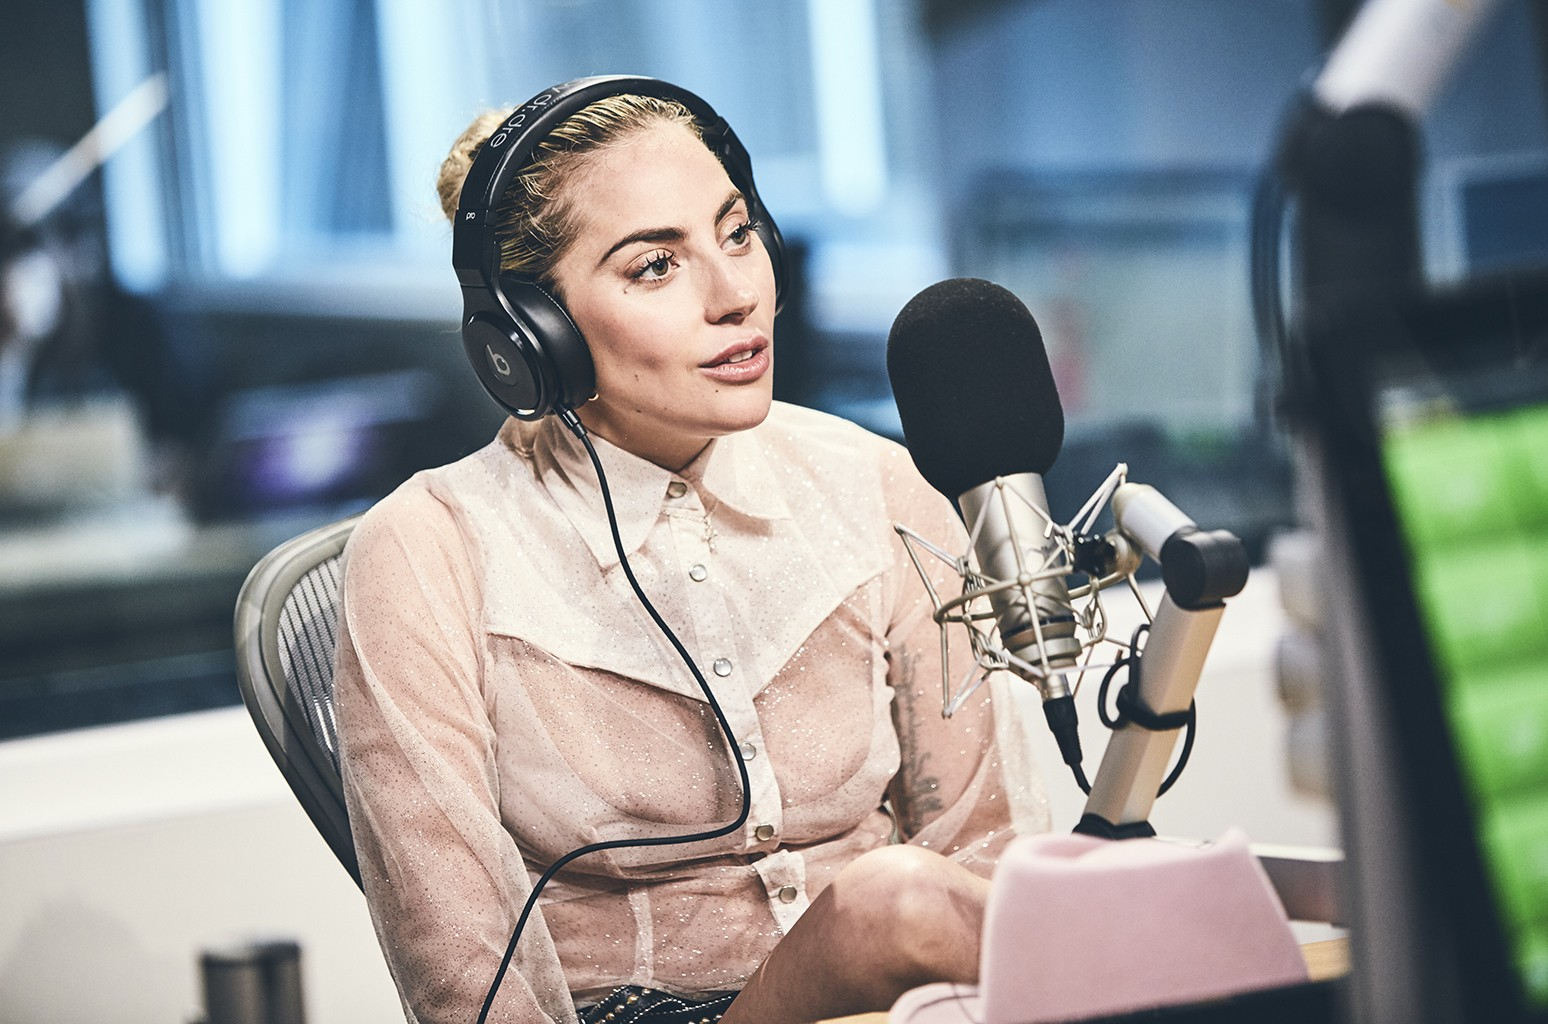 Lady Gaga during an interview with Zane Lowe for Beats 1 Radio.